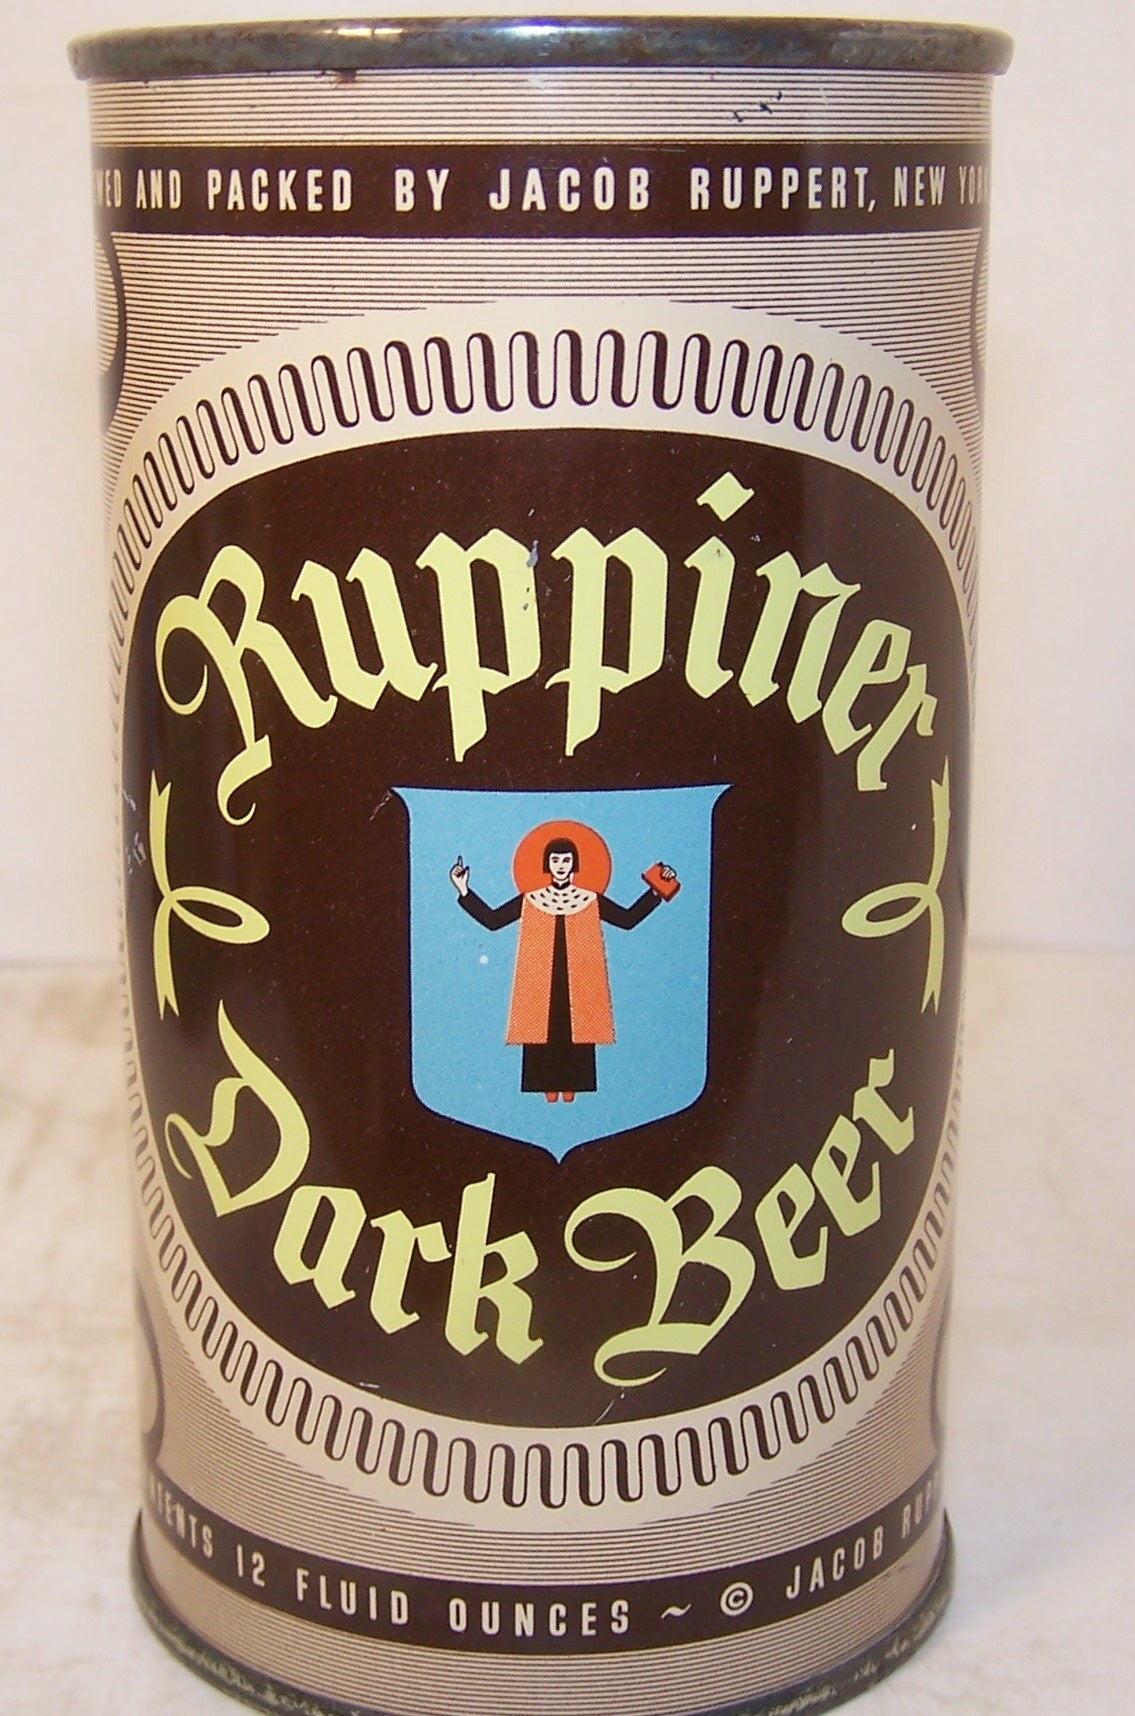 Ruppiner Dark Beer, USBC 126-35, Grade A1+ Sold in 2017